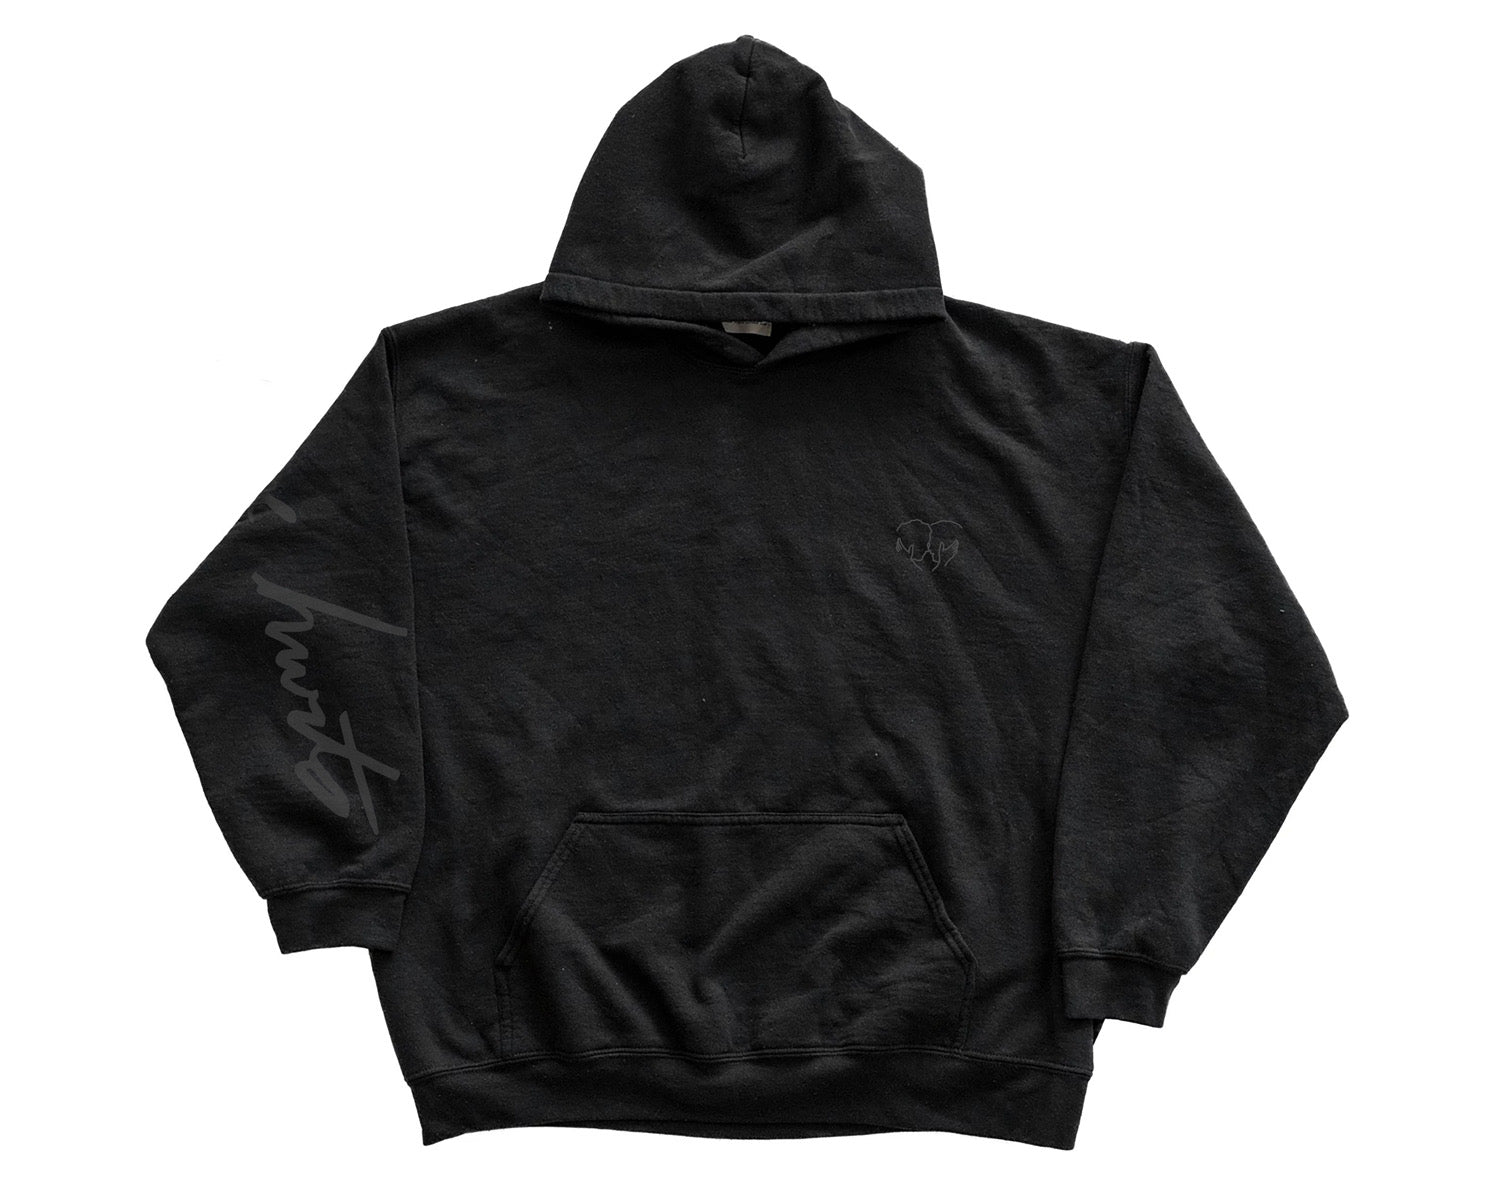 LOVE HURTS HOODED SWEATSHIRT BLACK ON BLACK